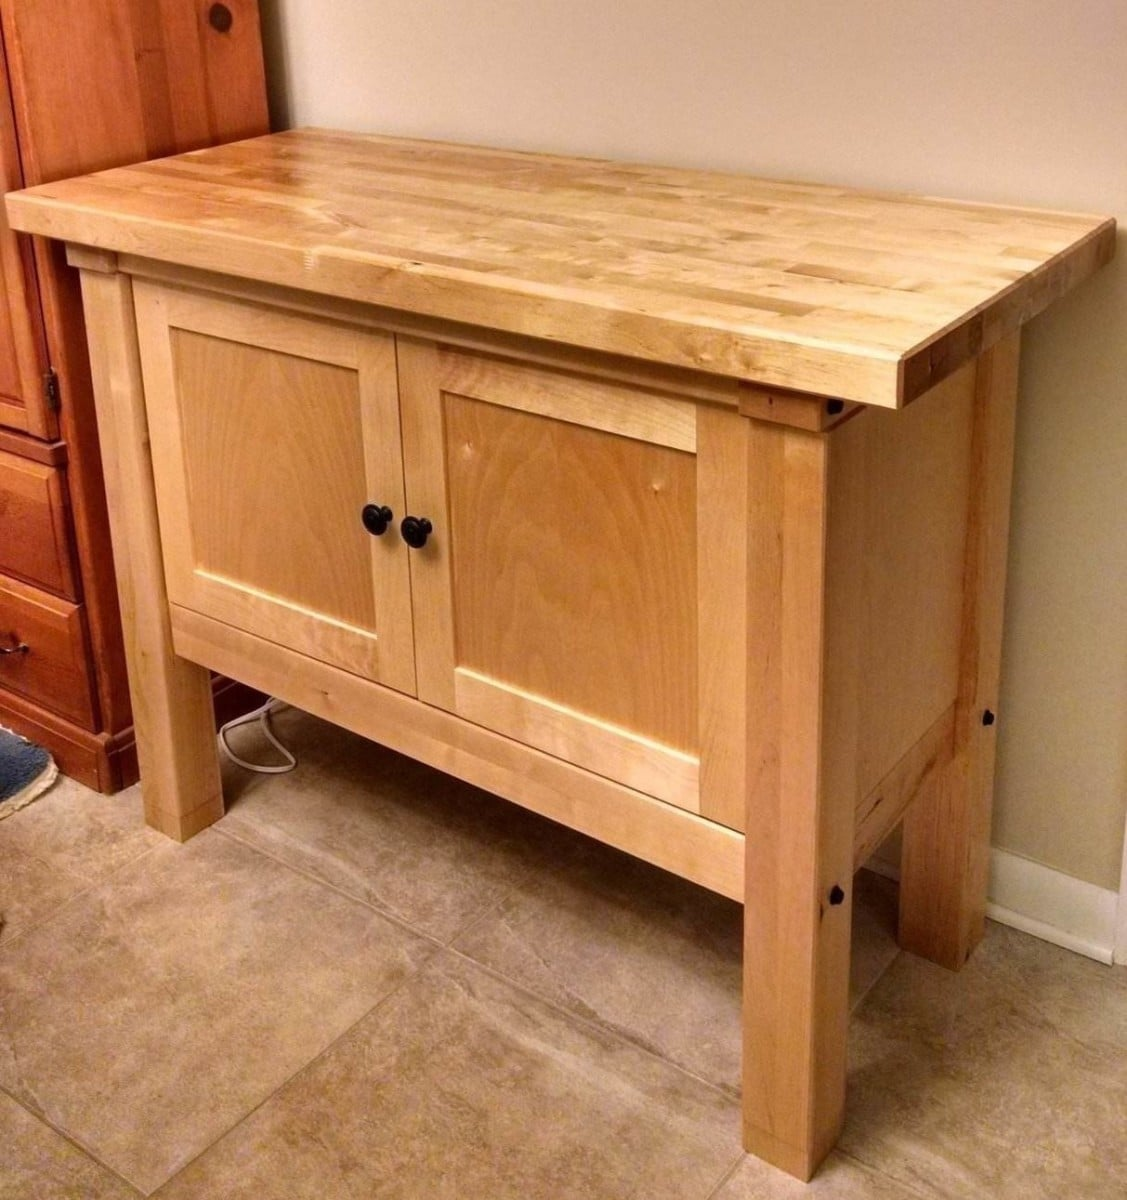 Groland Island To Cabinet Conversion Ikea Hackers